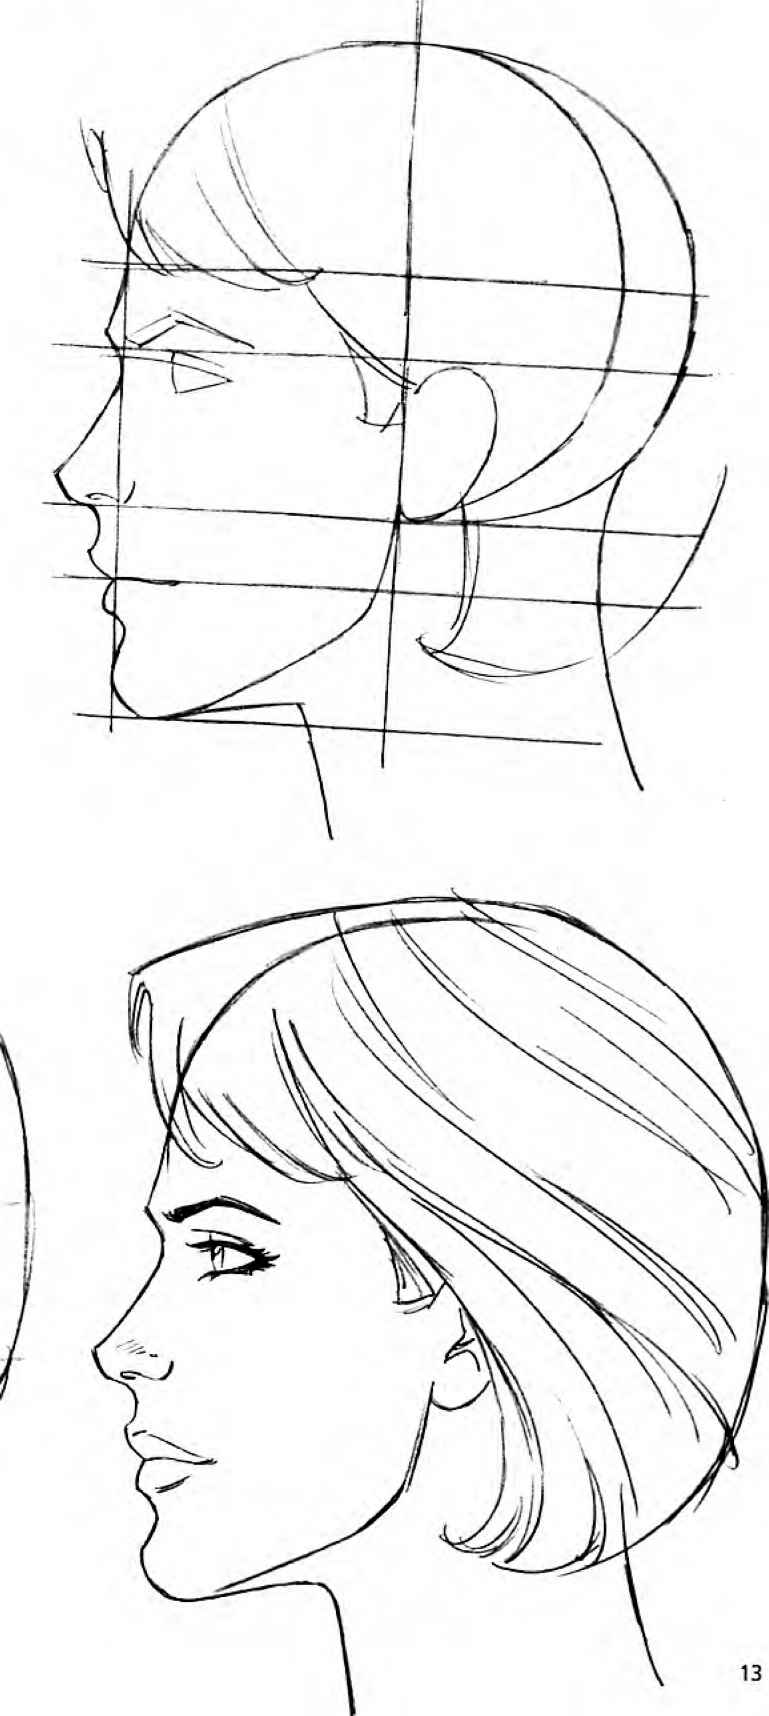 The Modern Female Head - Drawing Comics - Joshua Nava Arts